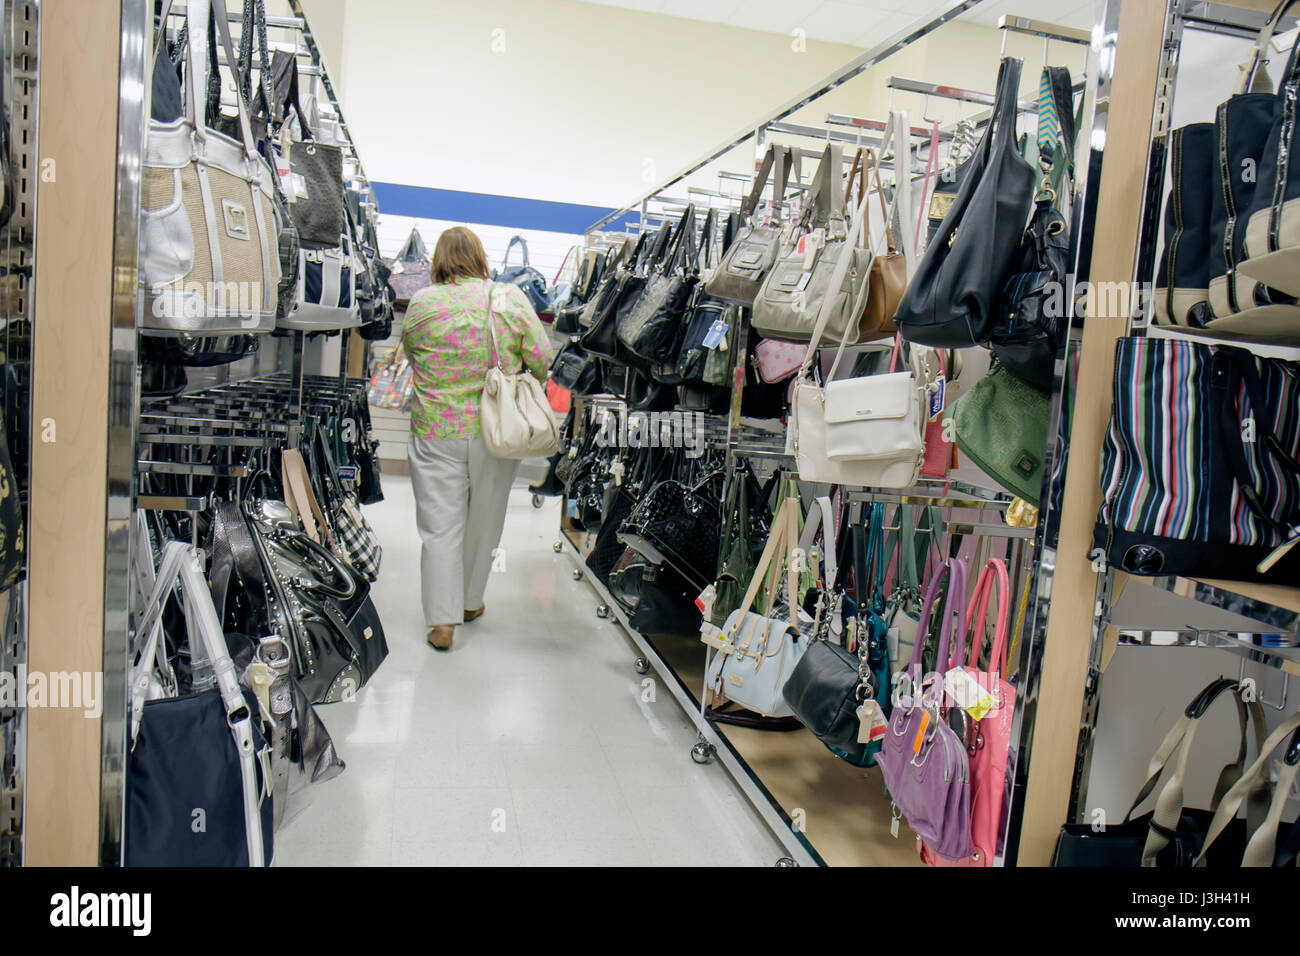 Miami Florida Dolphin Mall Marshall s Department Store discount retail  handbags shopping shopper woman aisle - Stock 608e166be18fd